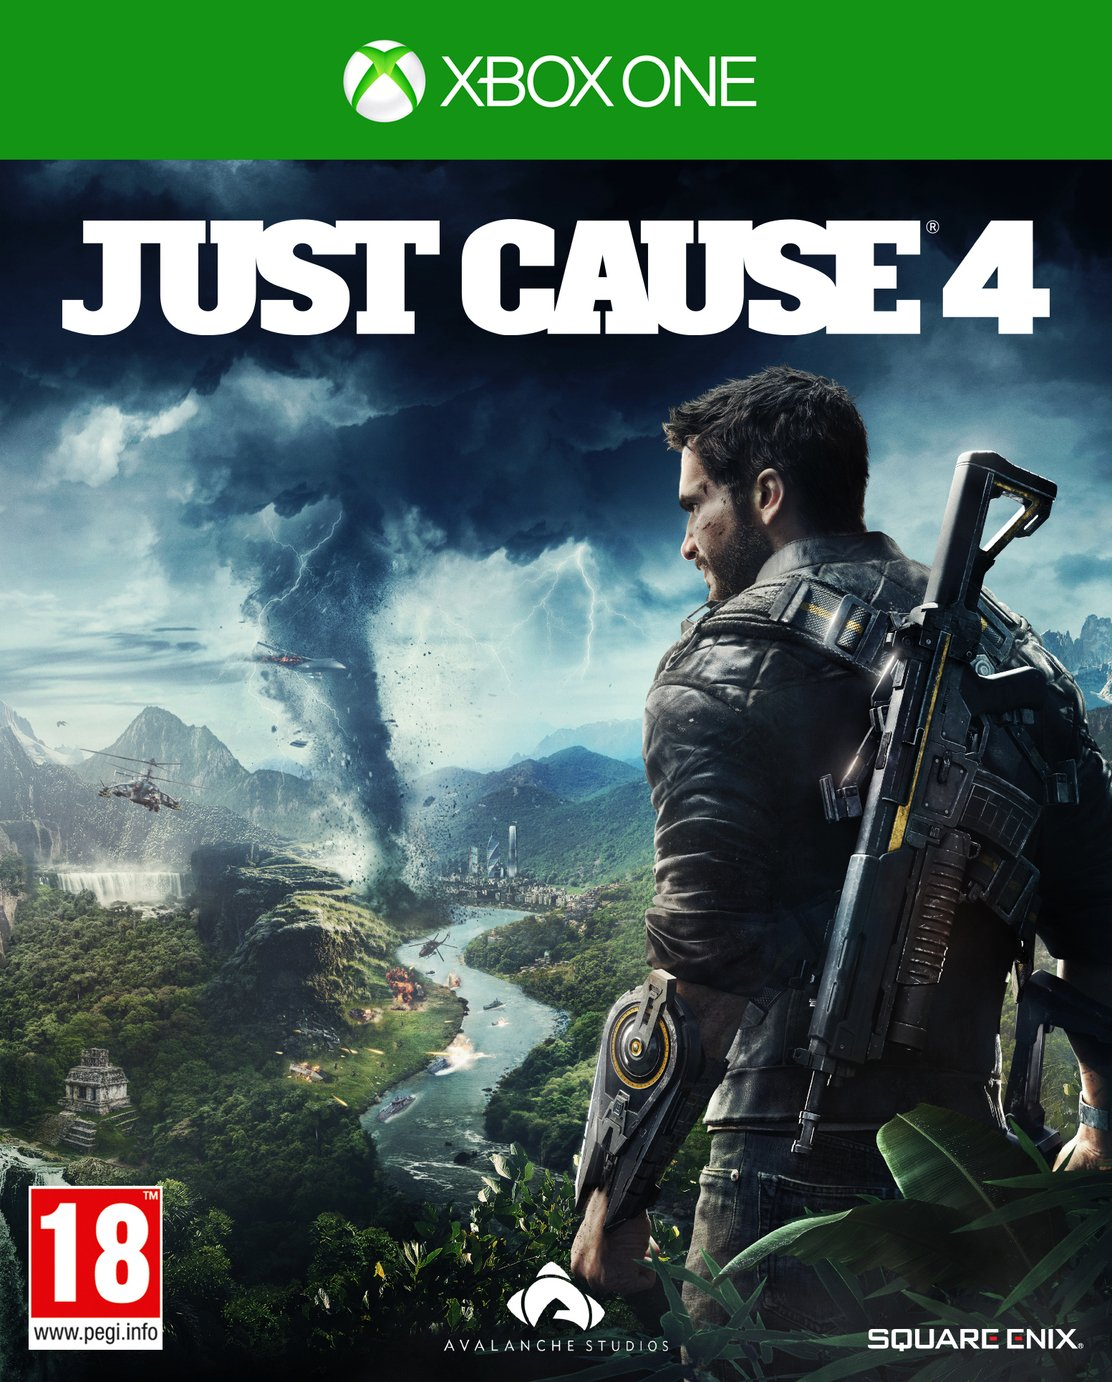 Just Cause 4 Xbox One Game from Xbox